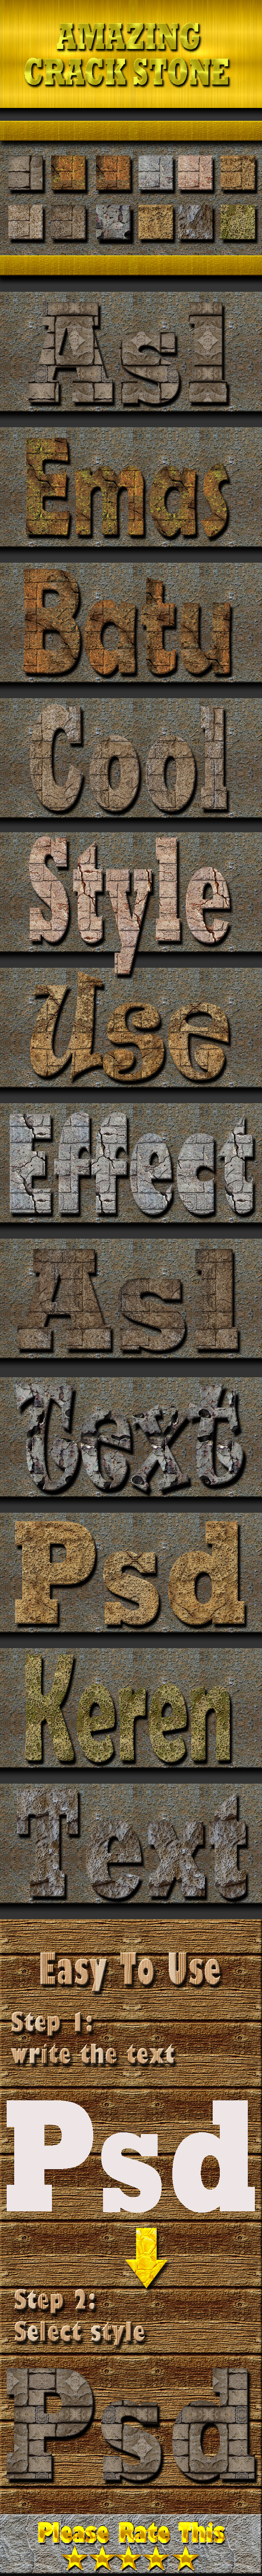 Cracked Stone Text Effect Style - Styles Photoshop